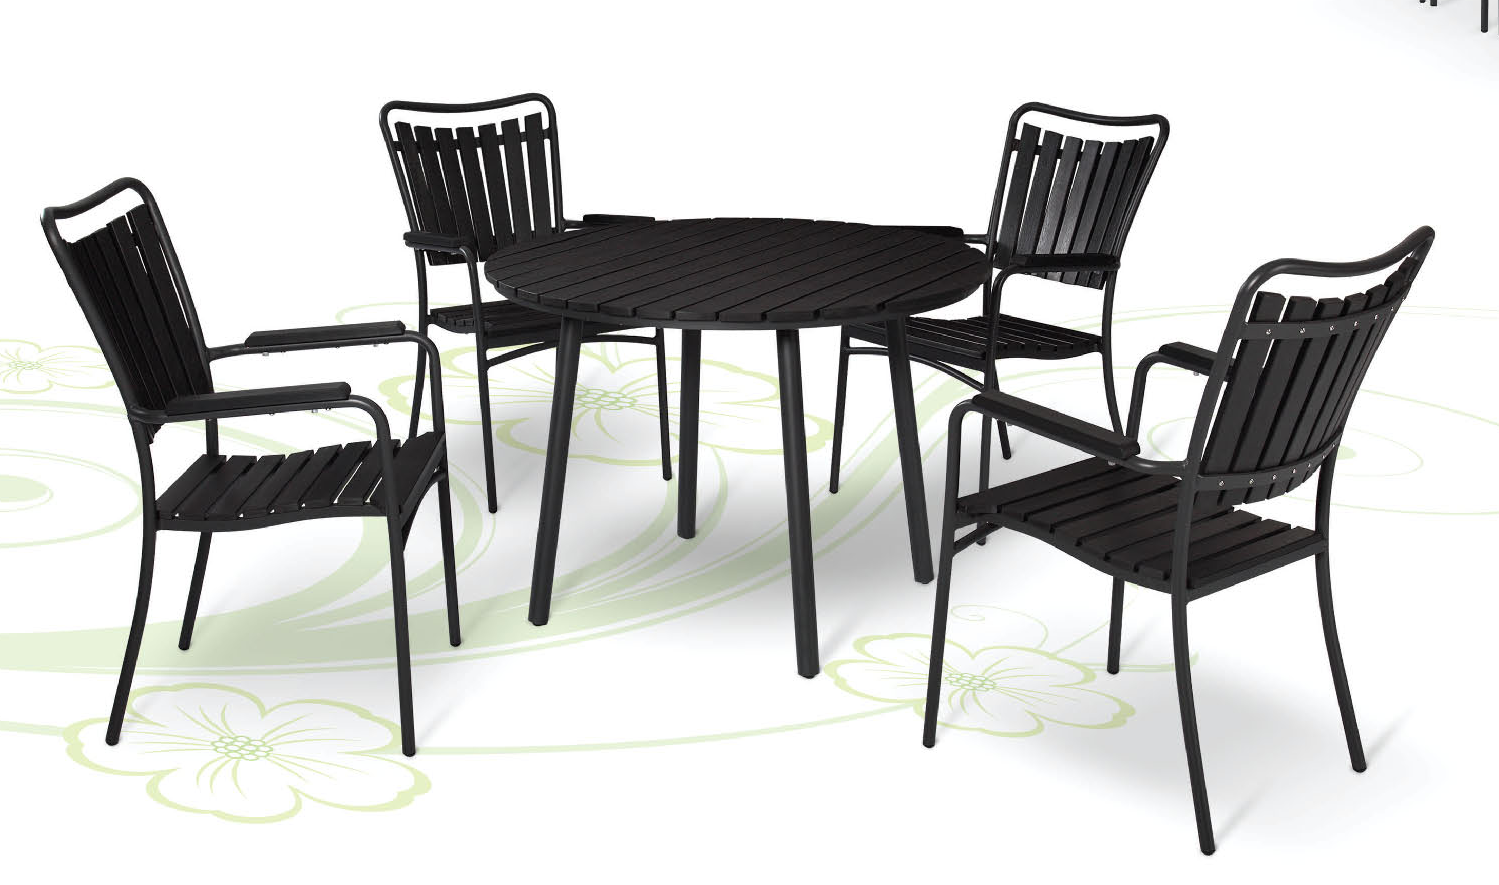 Bakelite table set  sc 1 th 172 & Best One Outdoor Furniture LTD.